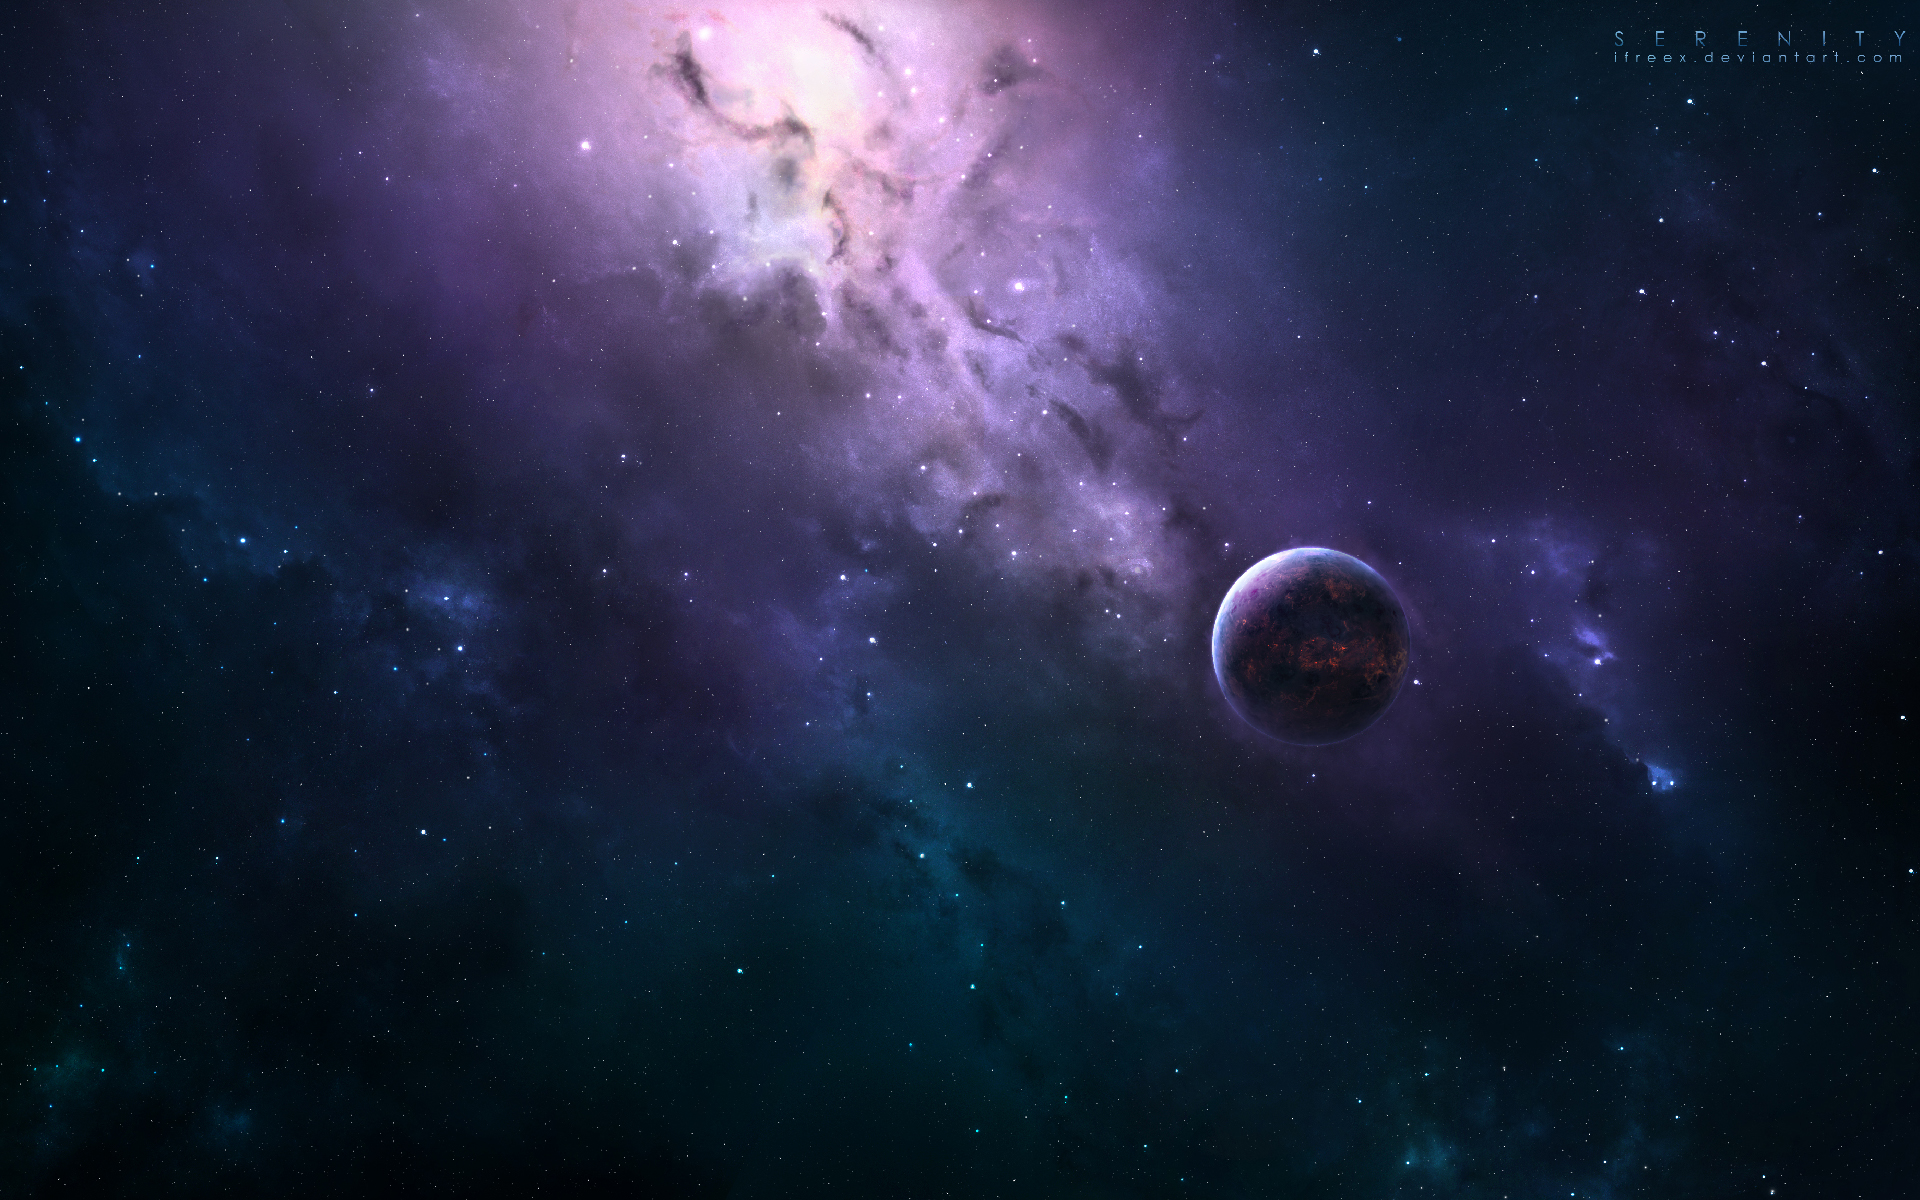 Best 3d Hd Wallpapers For Pc Digital Universe Galaxy Hd Digital Universe 4k